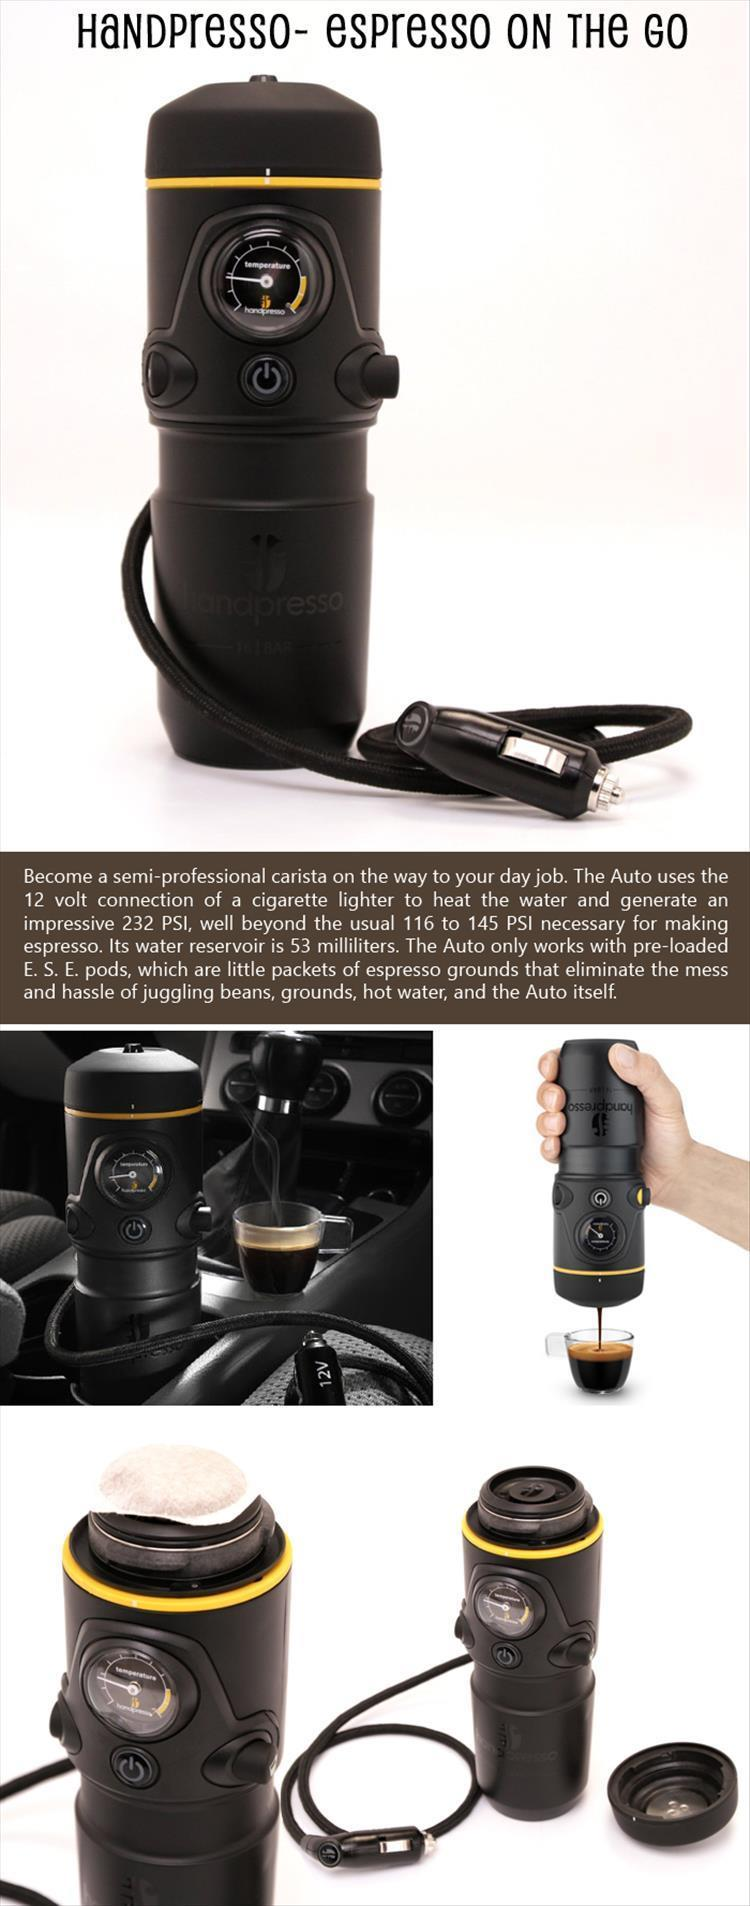 handpresso-espresso-on-the-go